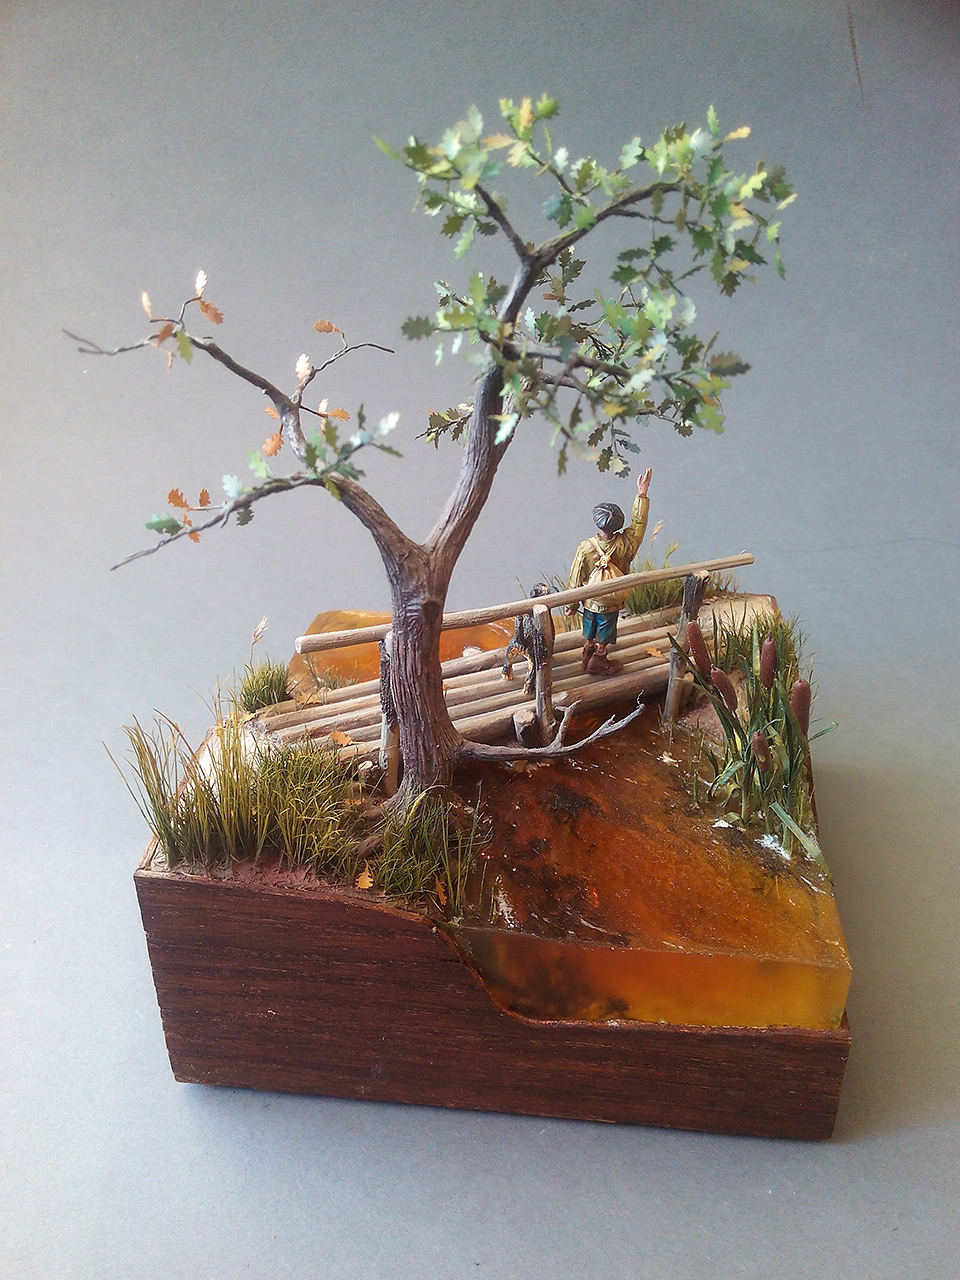 Dioramas and Vignettes: The Friends, photo #3